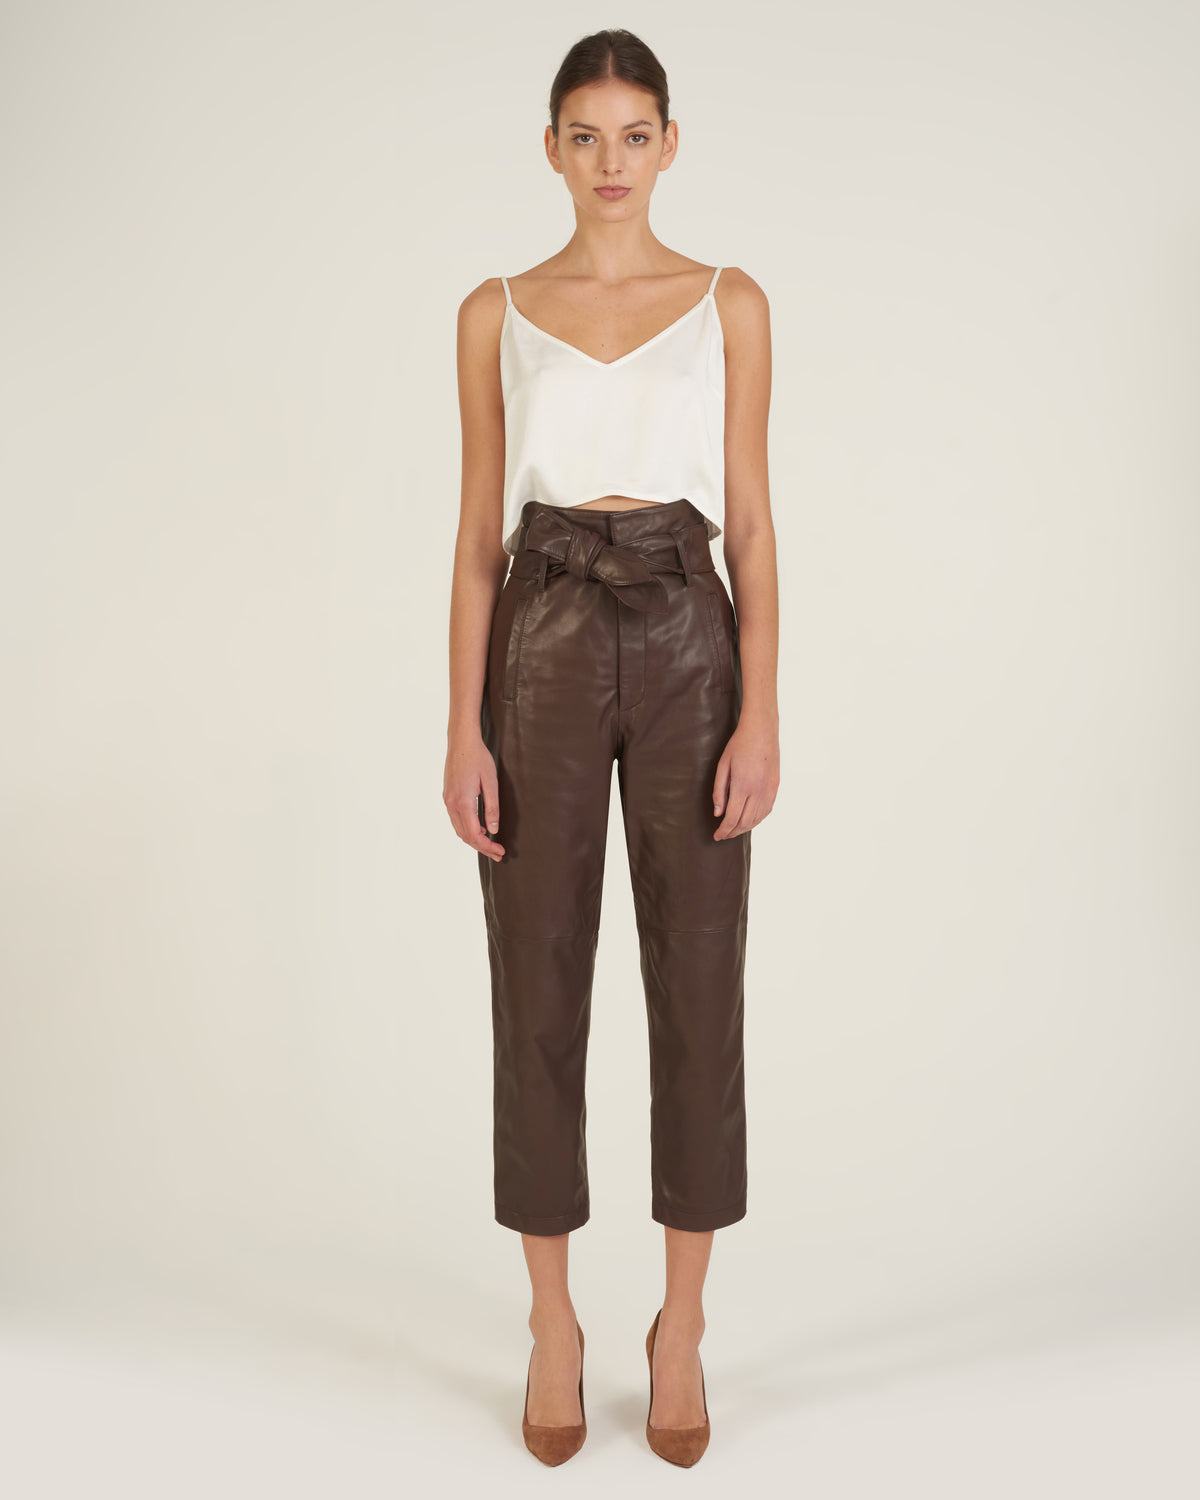 Brennan Leather Pant in Chesnut